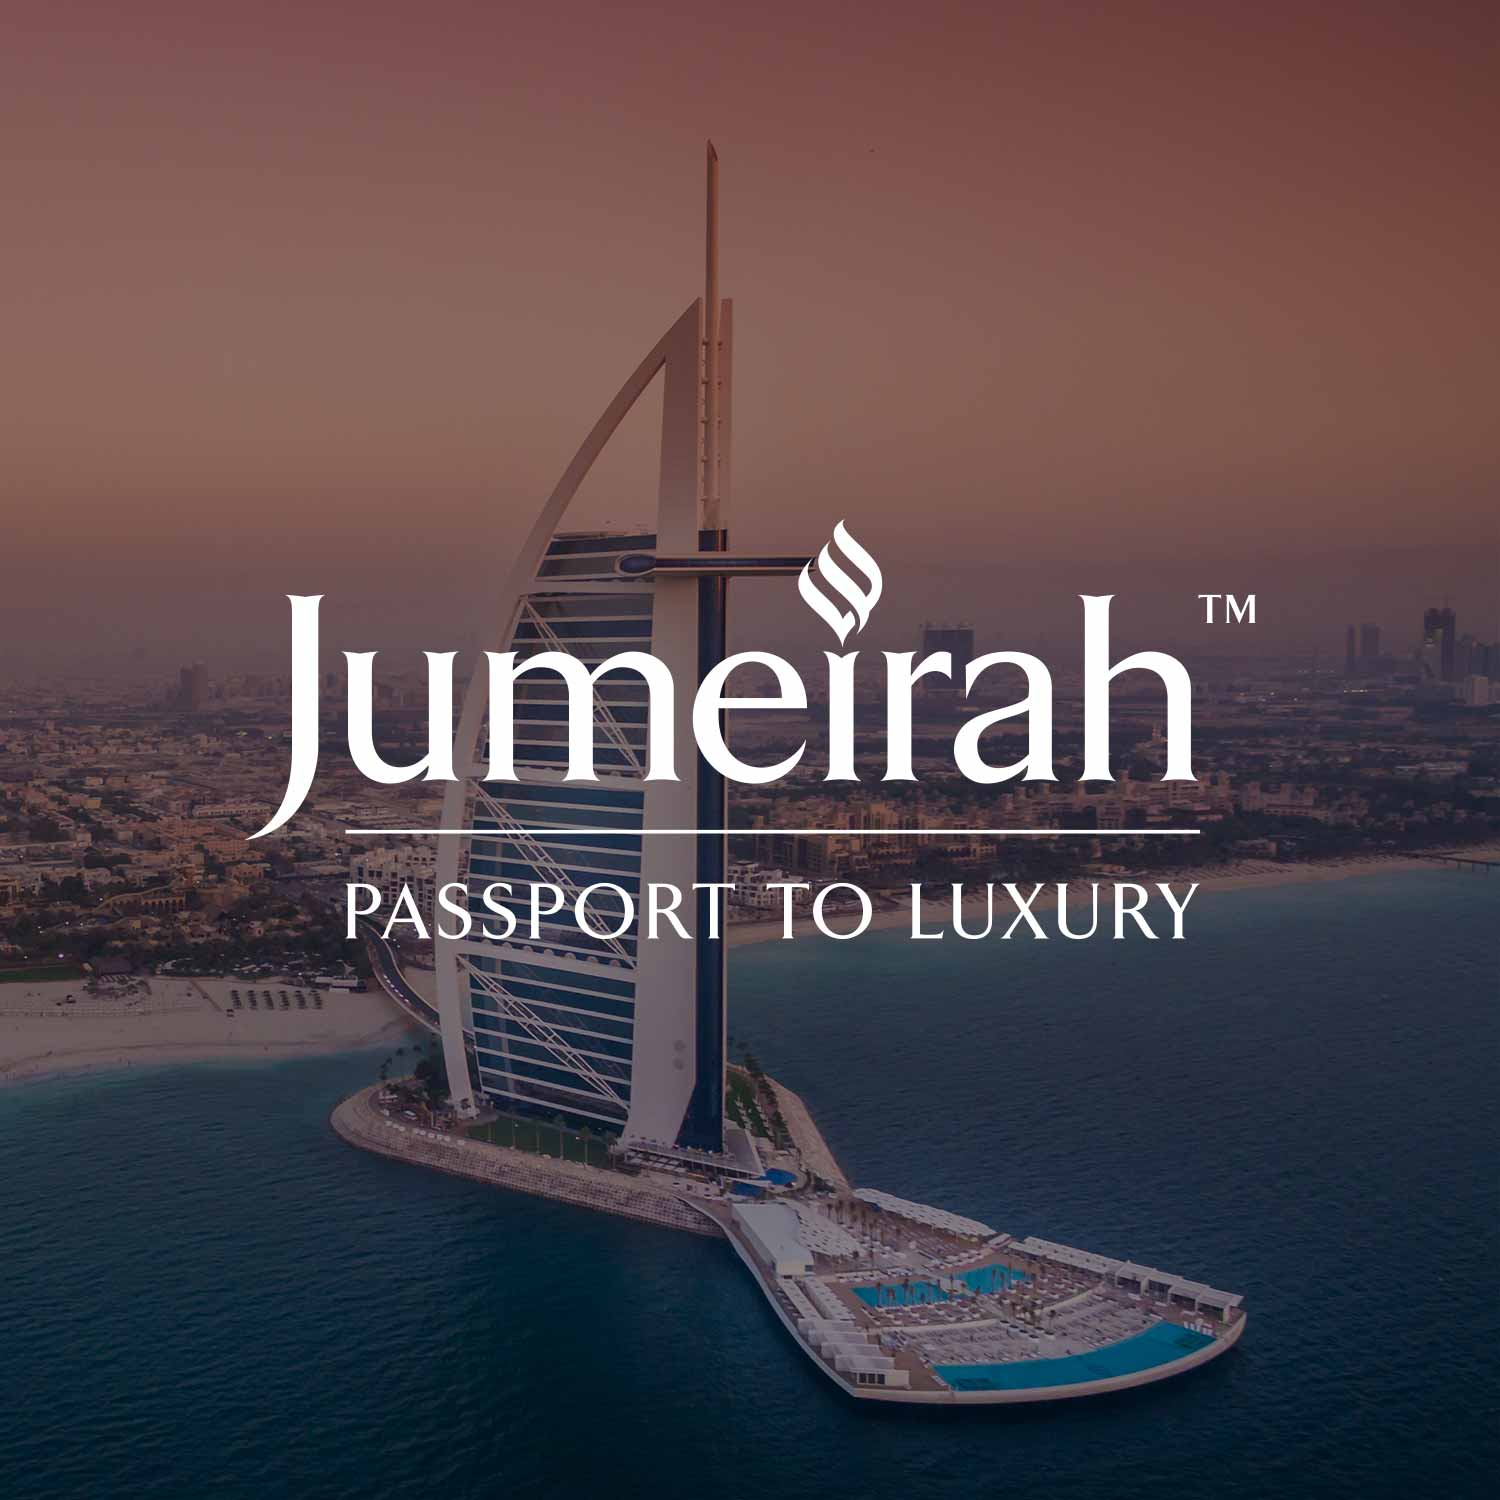 jumeirah-passport-to-luxury-1500